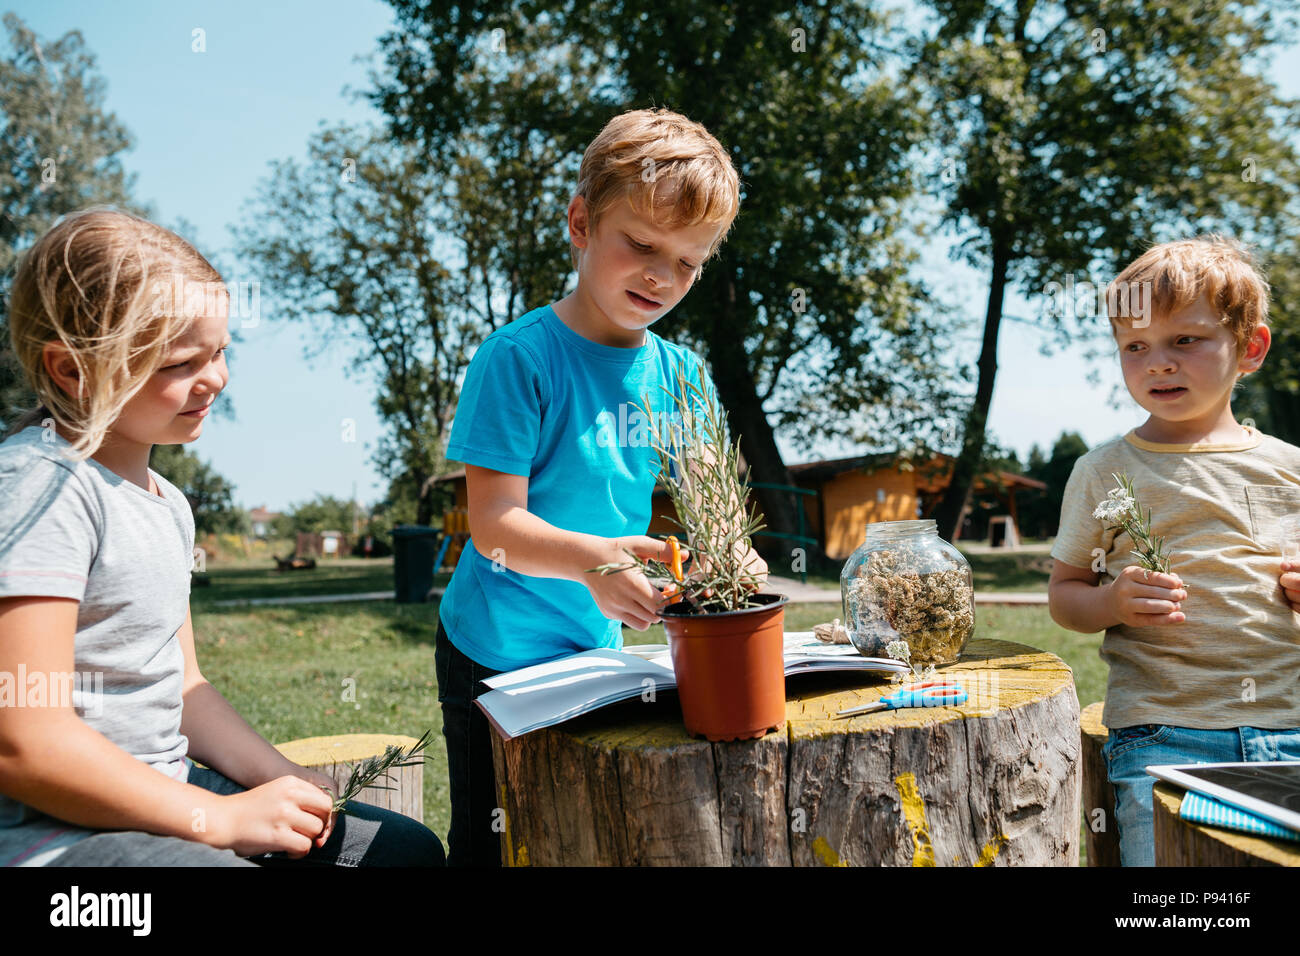 Homeschooling - children working on an environmental project outside in a park. Young students learning about plants and herbs together. - Stock Image